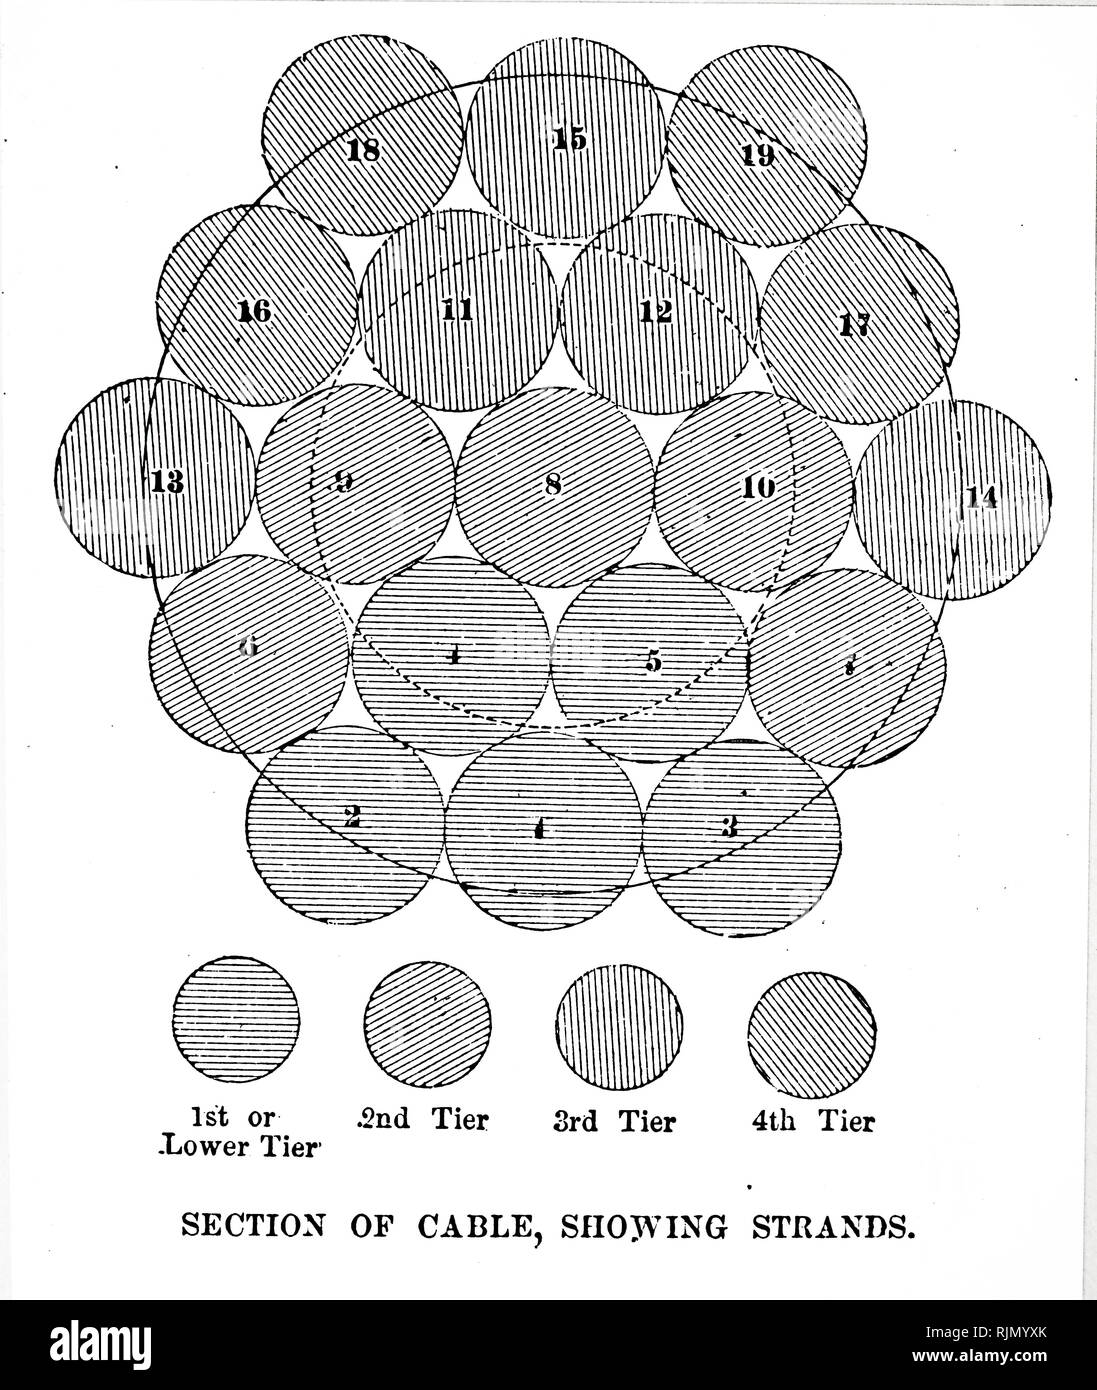 Illustration showing cross section of cables from the Brooklyn Suspension Bridge, New York, designed and built by John Augustus Roebling (1806-1869), and his son Washington Augustus Roebling (1837-1926): opened 1883. Arrangement of 19 Strands, each of. 278 wires, which made up the main cables. 1883 - Stock Image